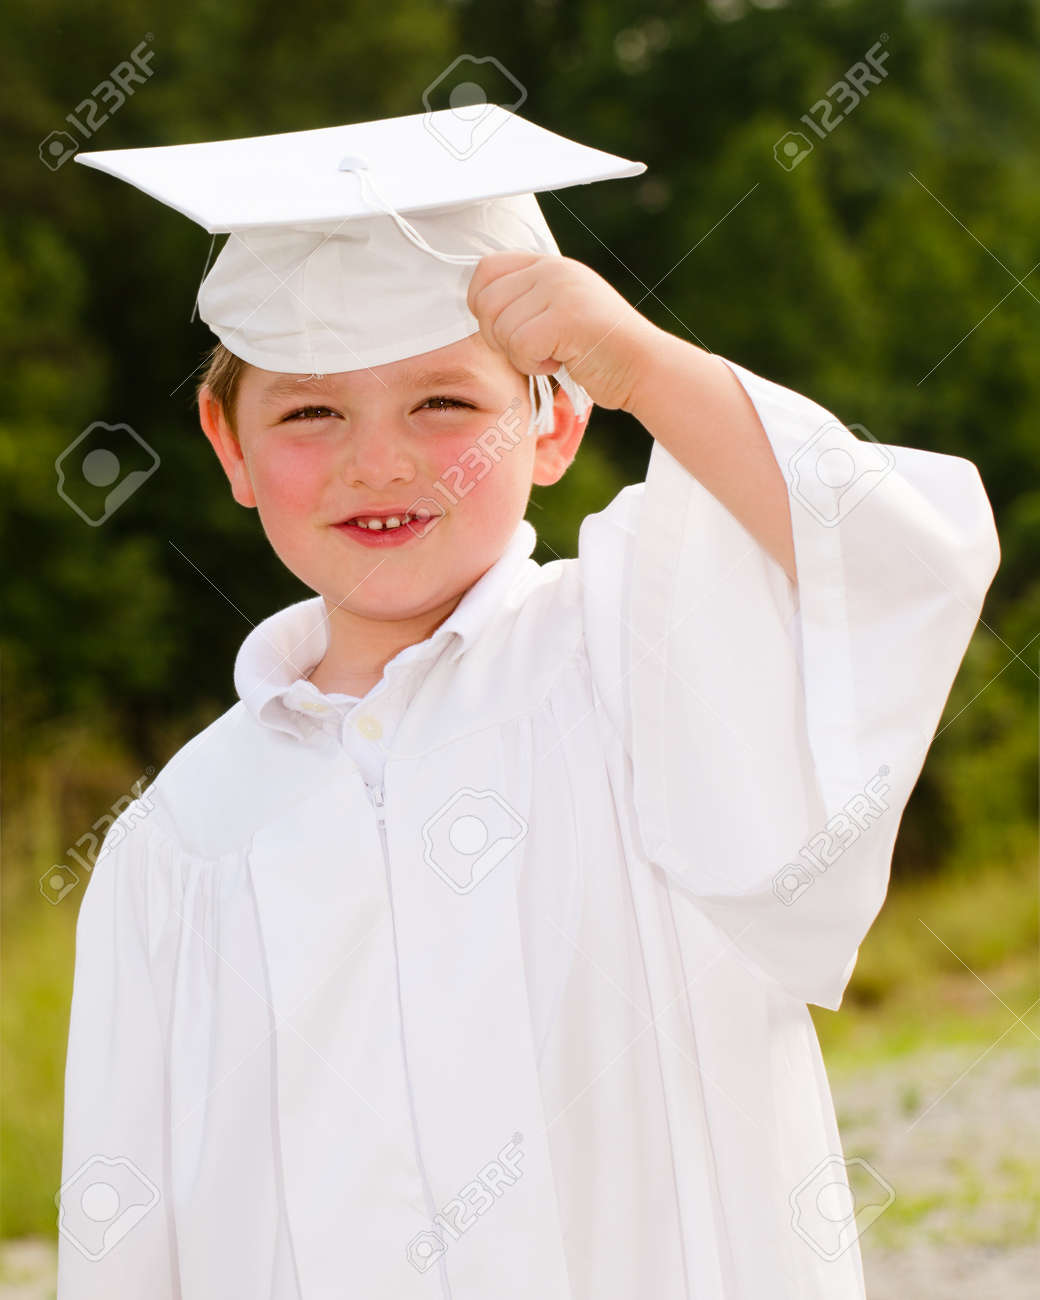 Young Boy With Cap And Gown For Preschool Graduation Stock Photo ...